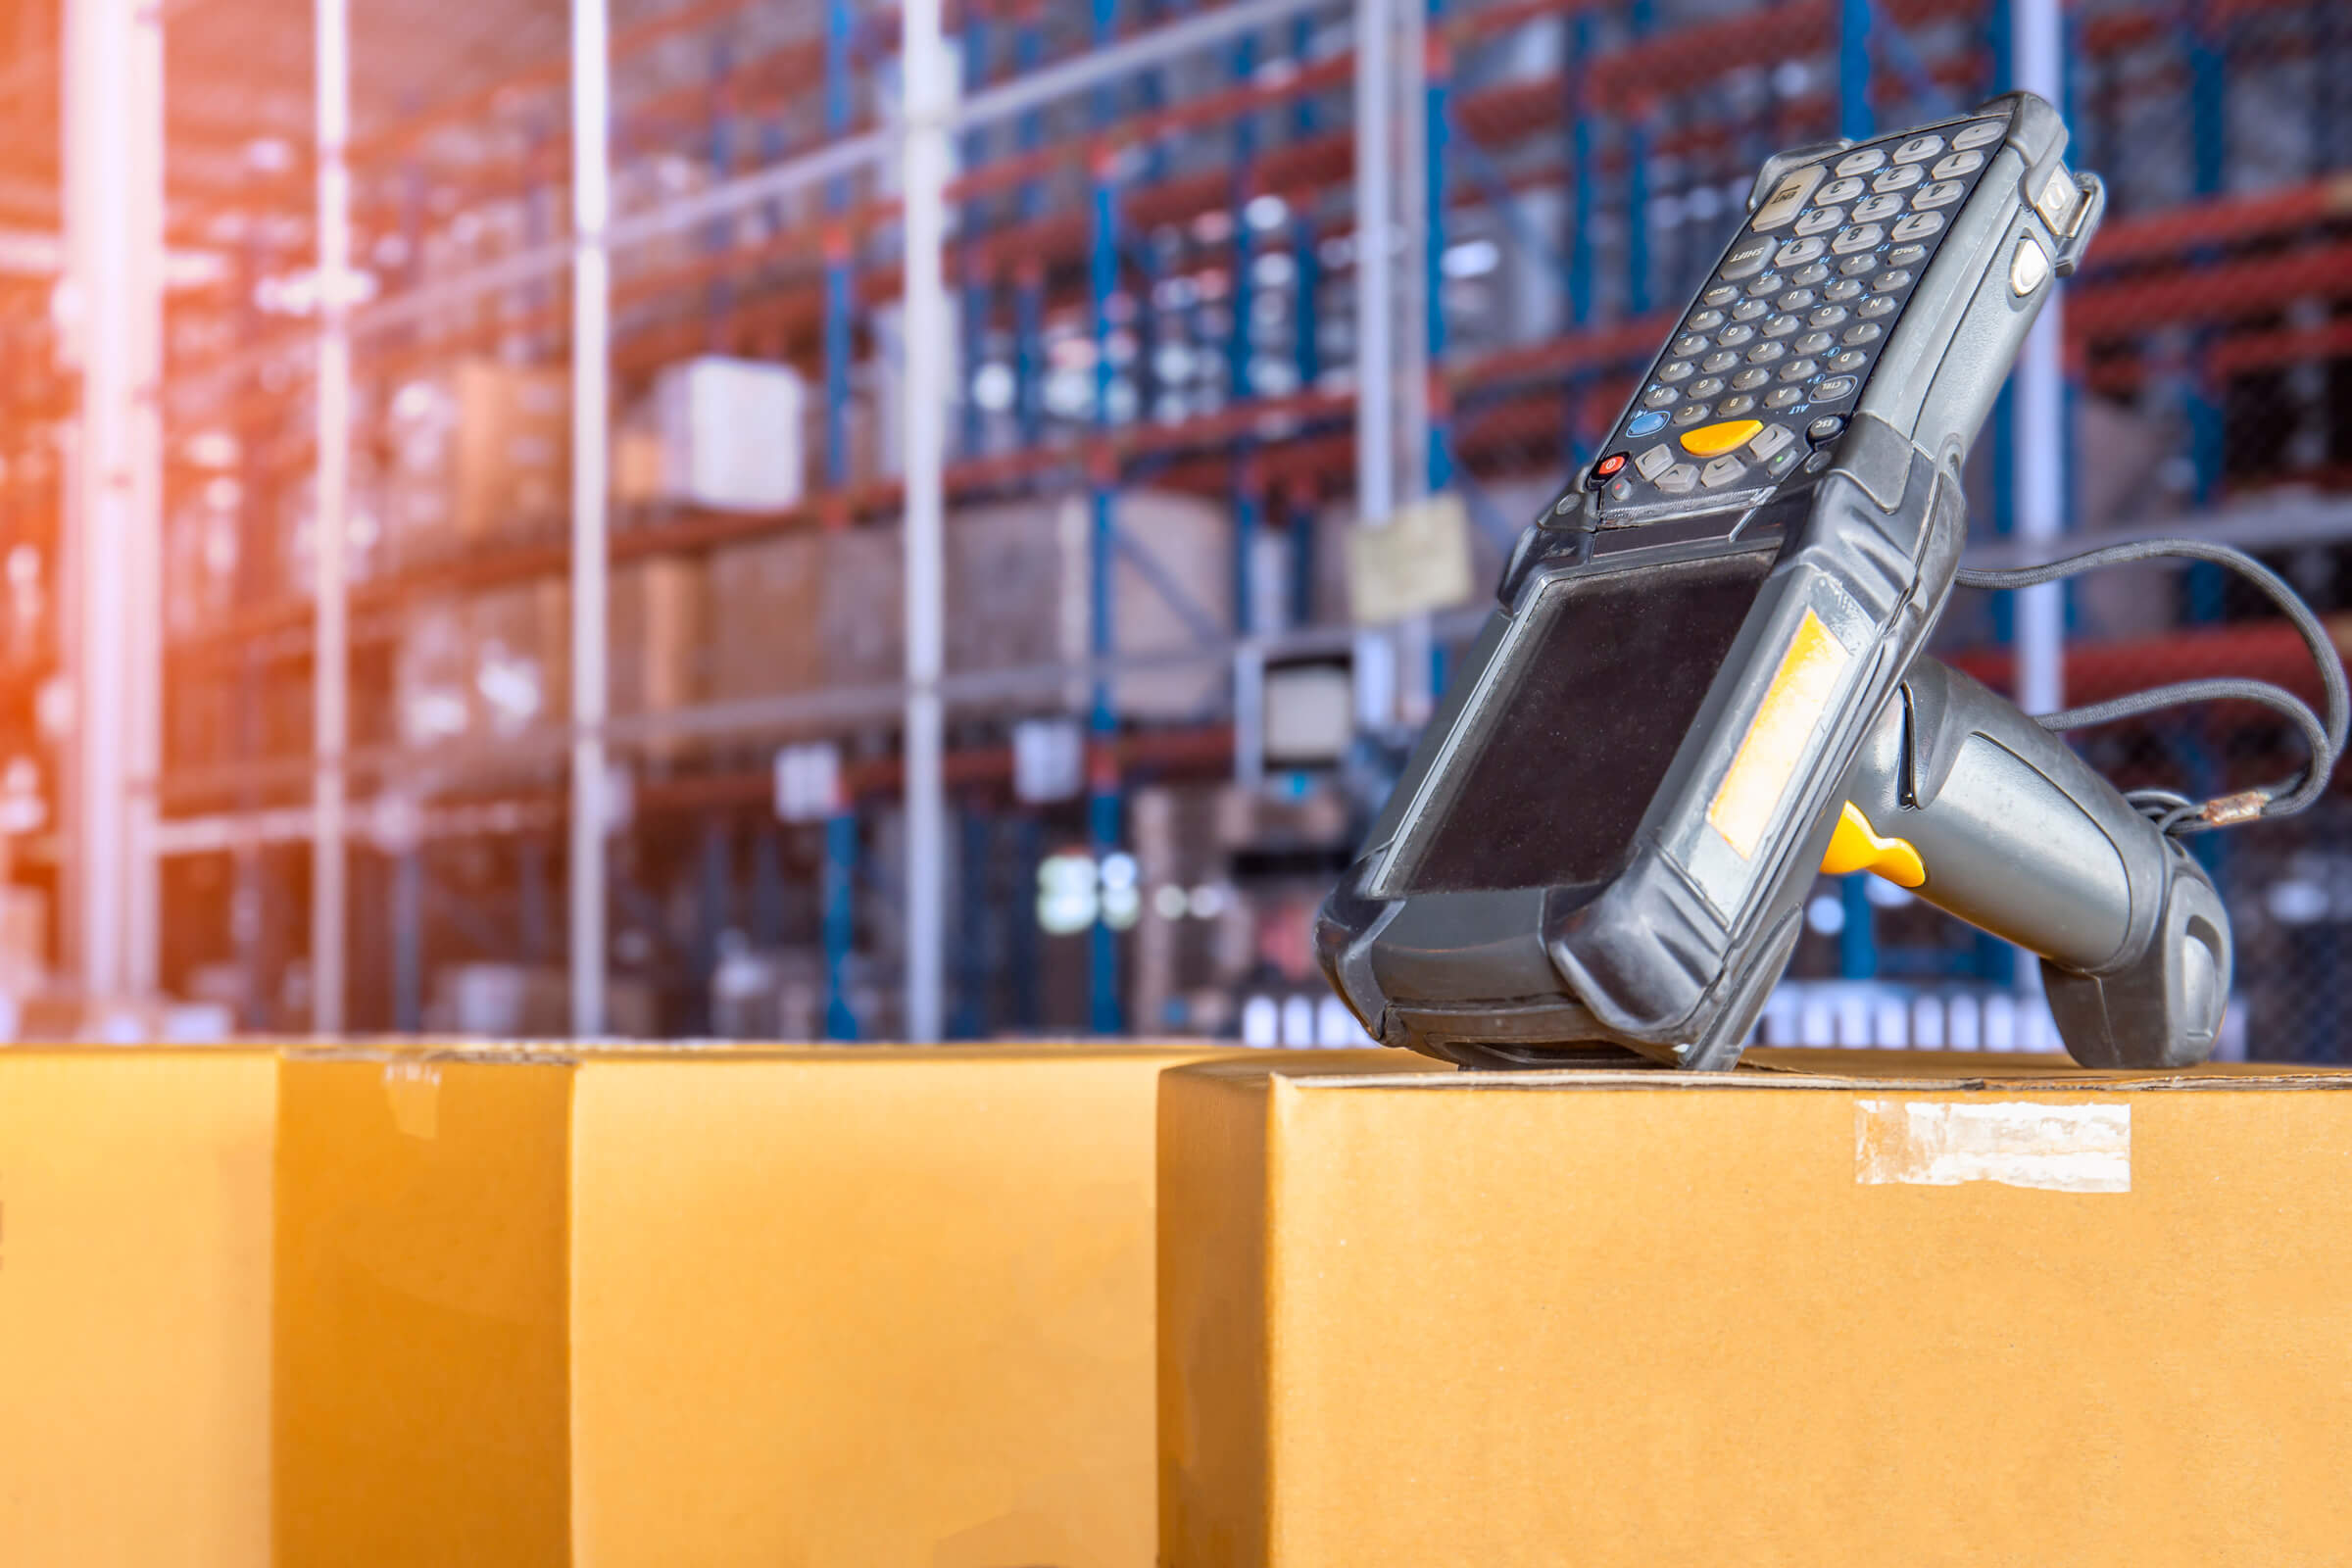 How Industrial IoT Can Benefit Your Supply Chain